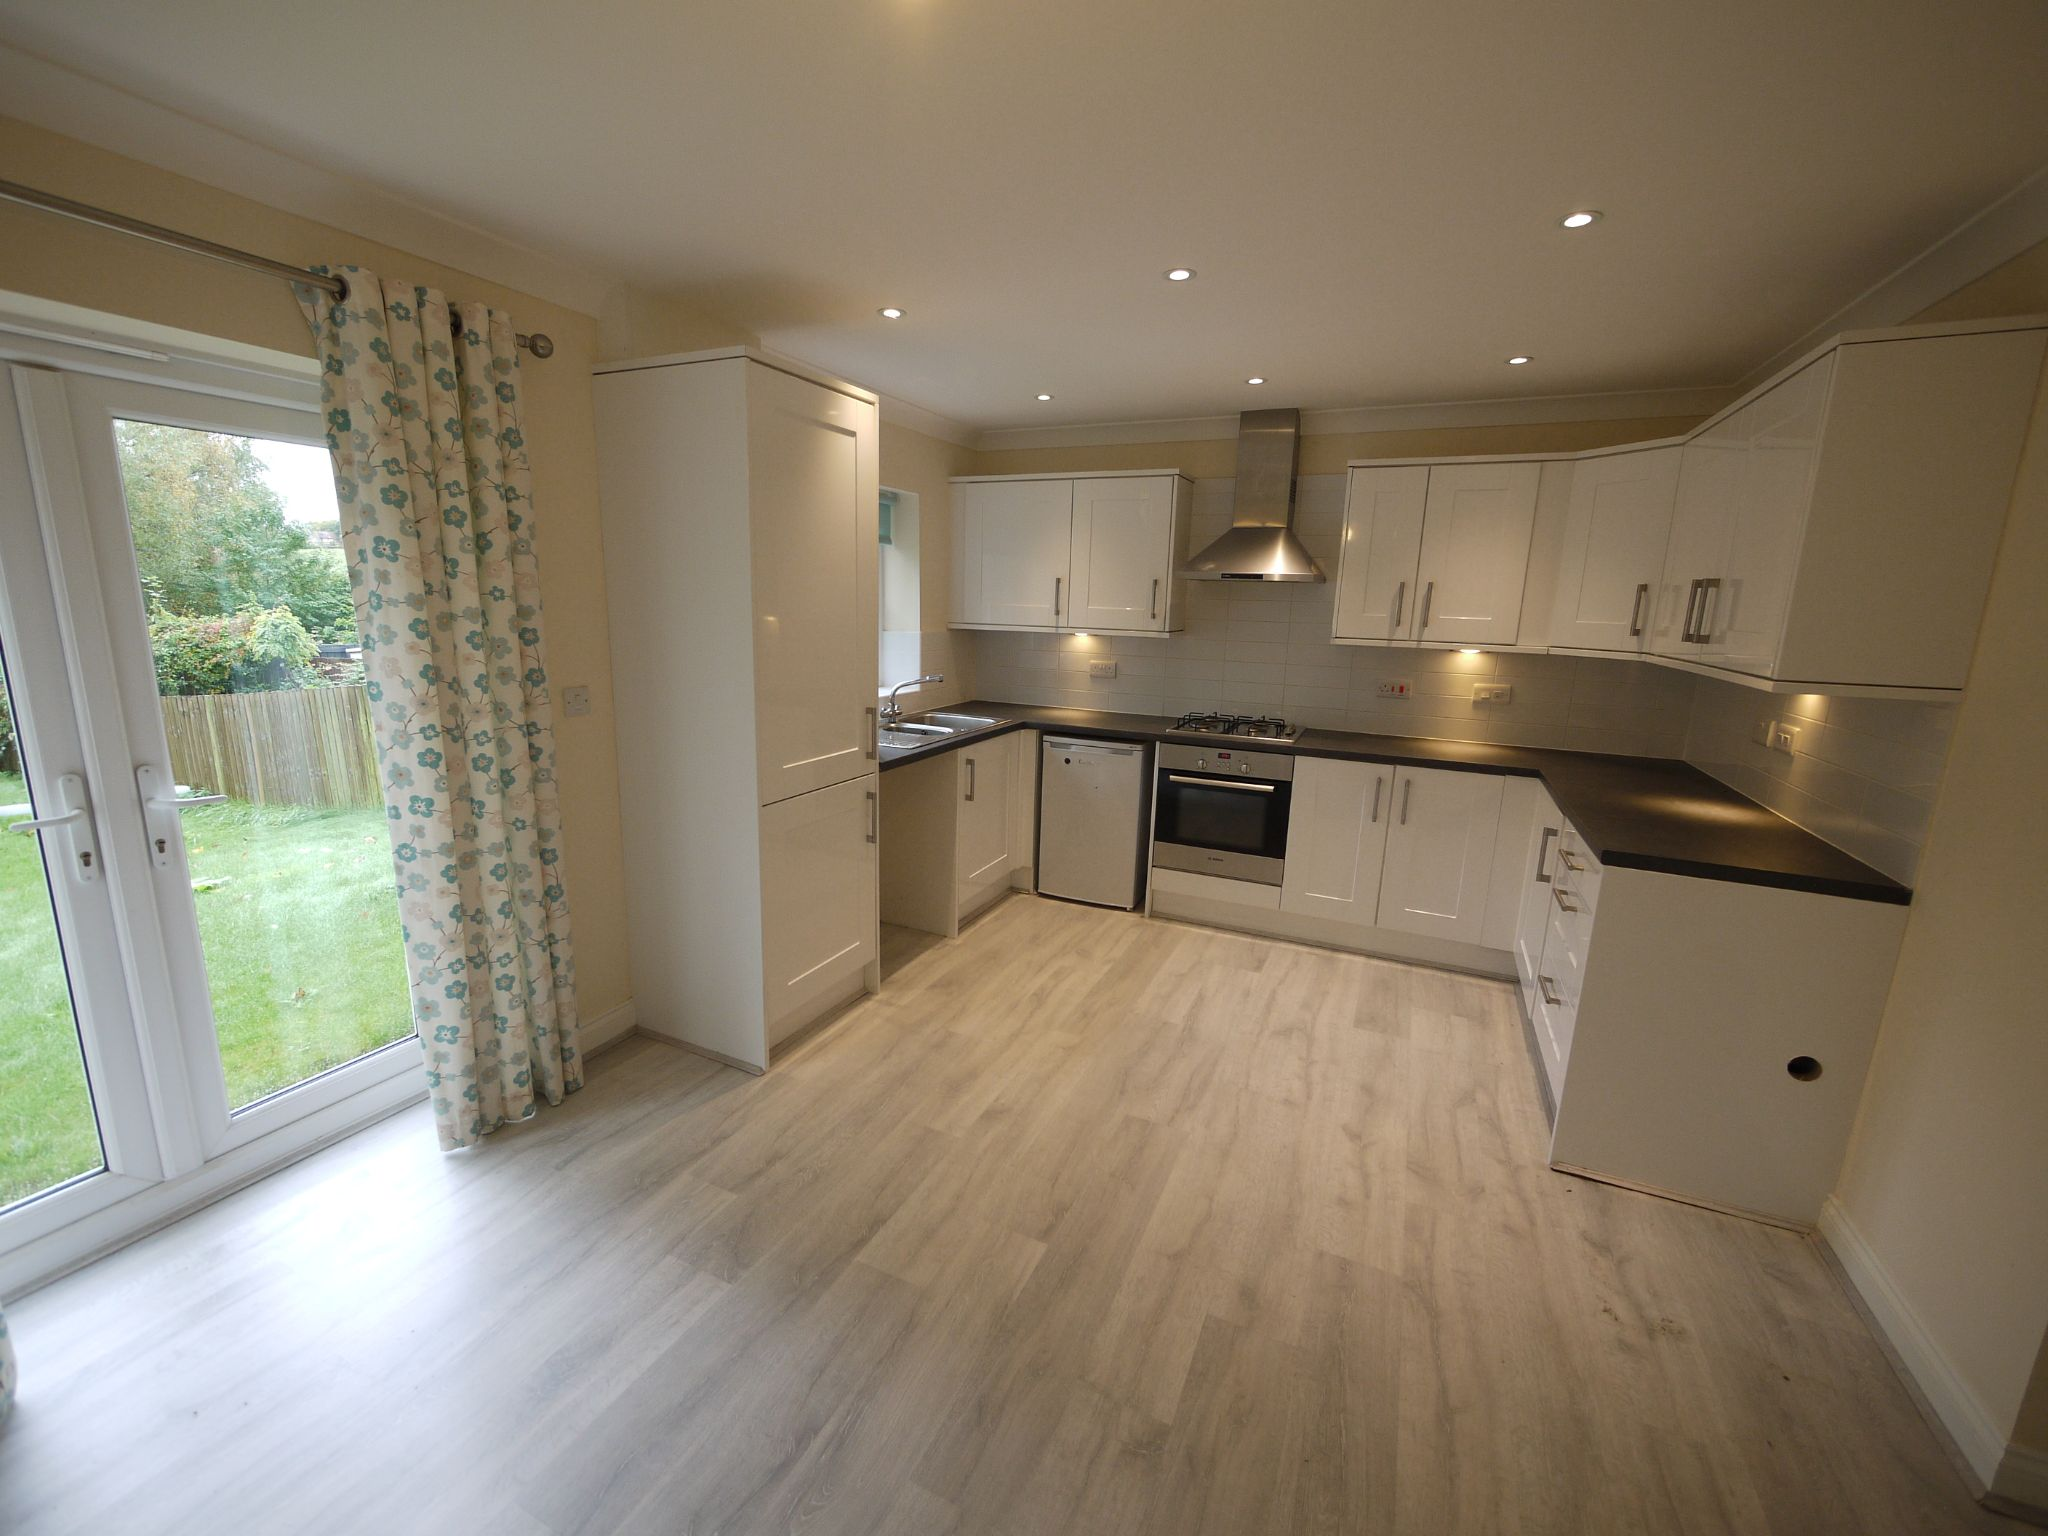 3 bedroom town house SSTC in Mirfield - Photograph 3.